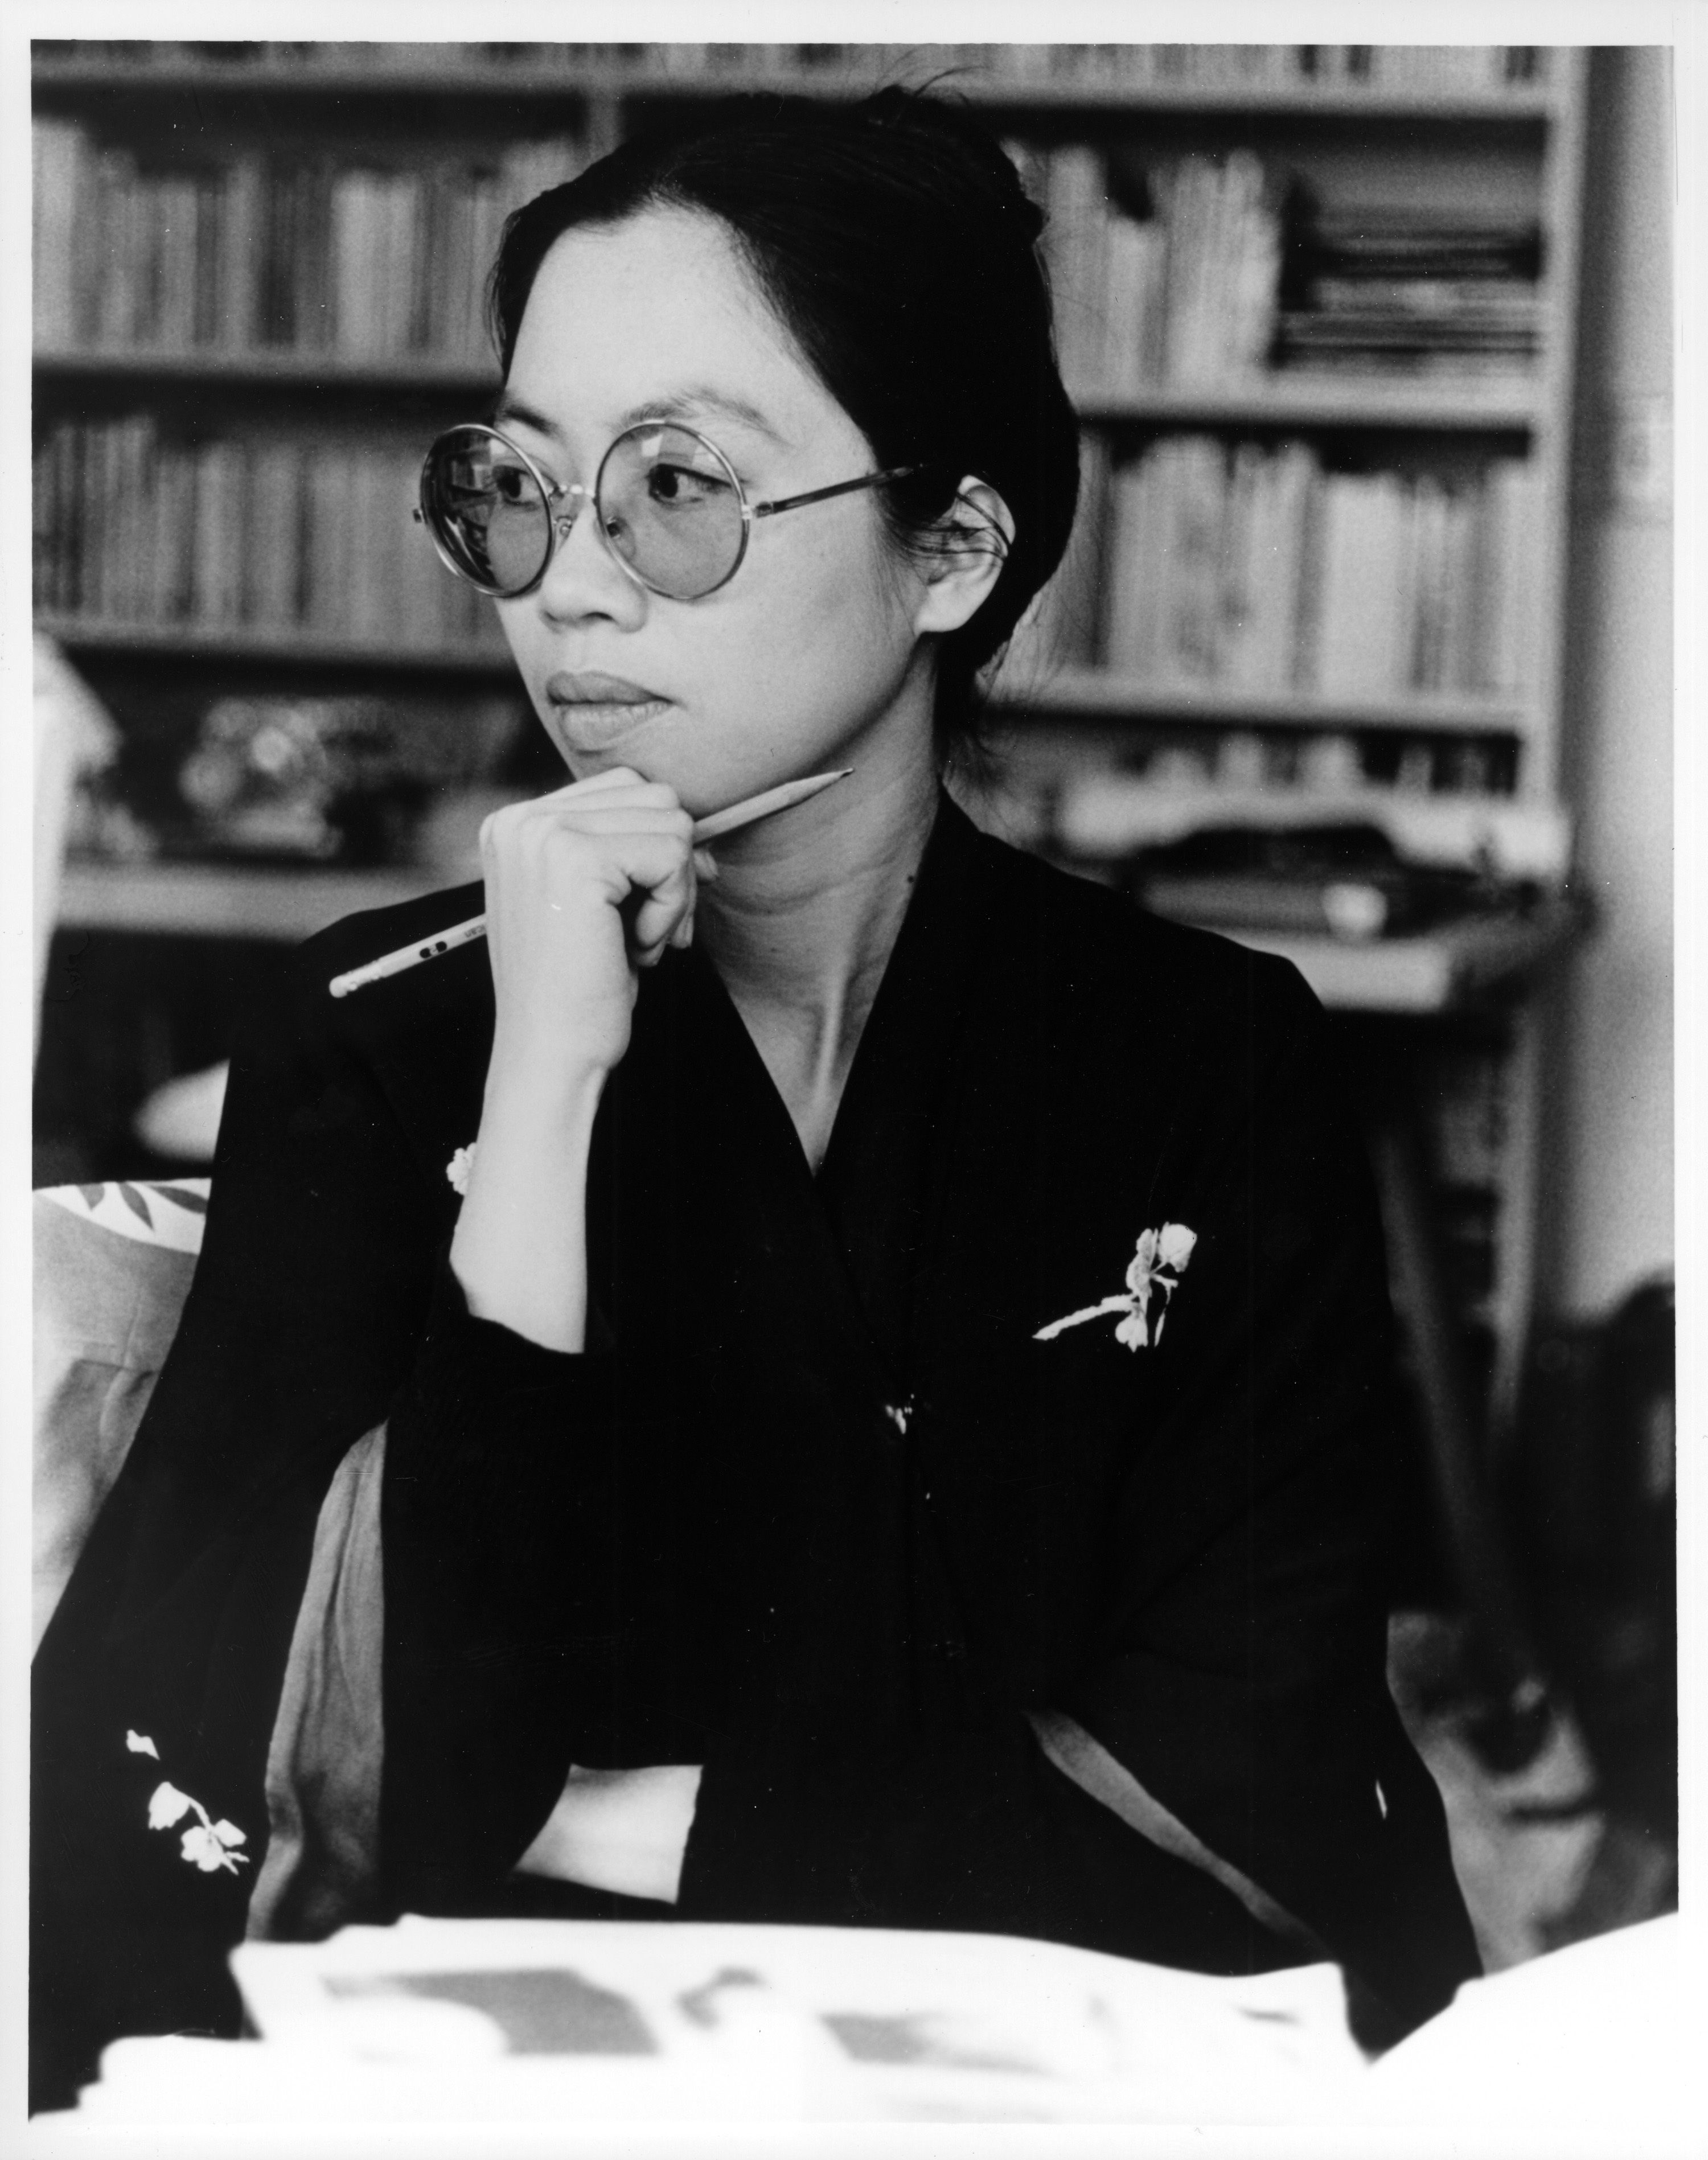 Trinh T Minh Ha (b. 1952): She is an independent filmmaker and feminist, post-colonial theorist. She teaches courses that focus on women's work as related to cultural politics, post-coloniality, contemporary critical theory and the arts.